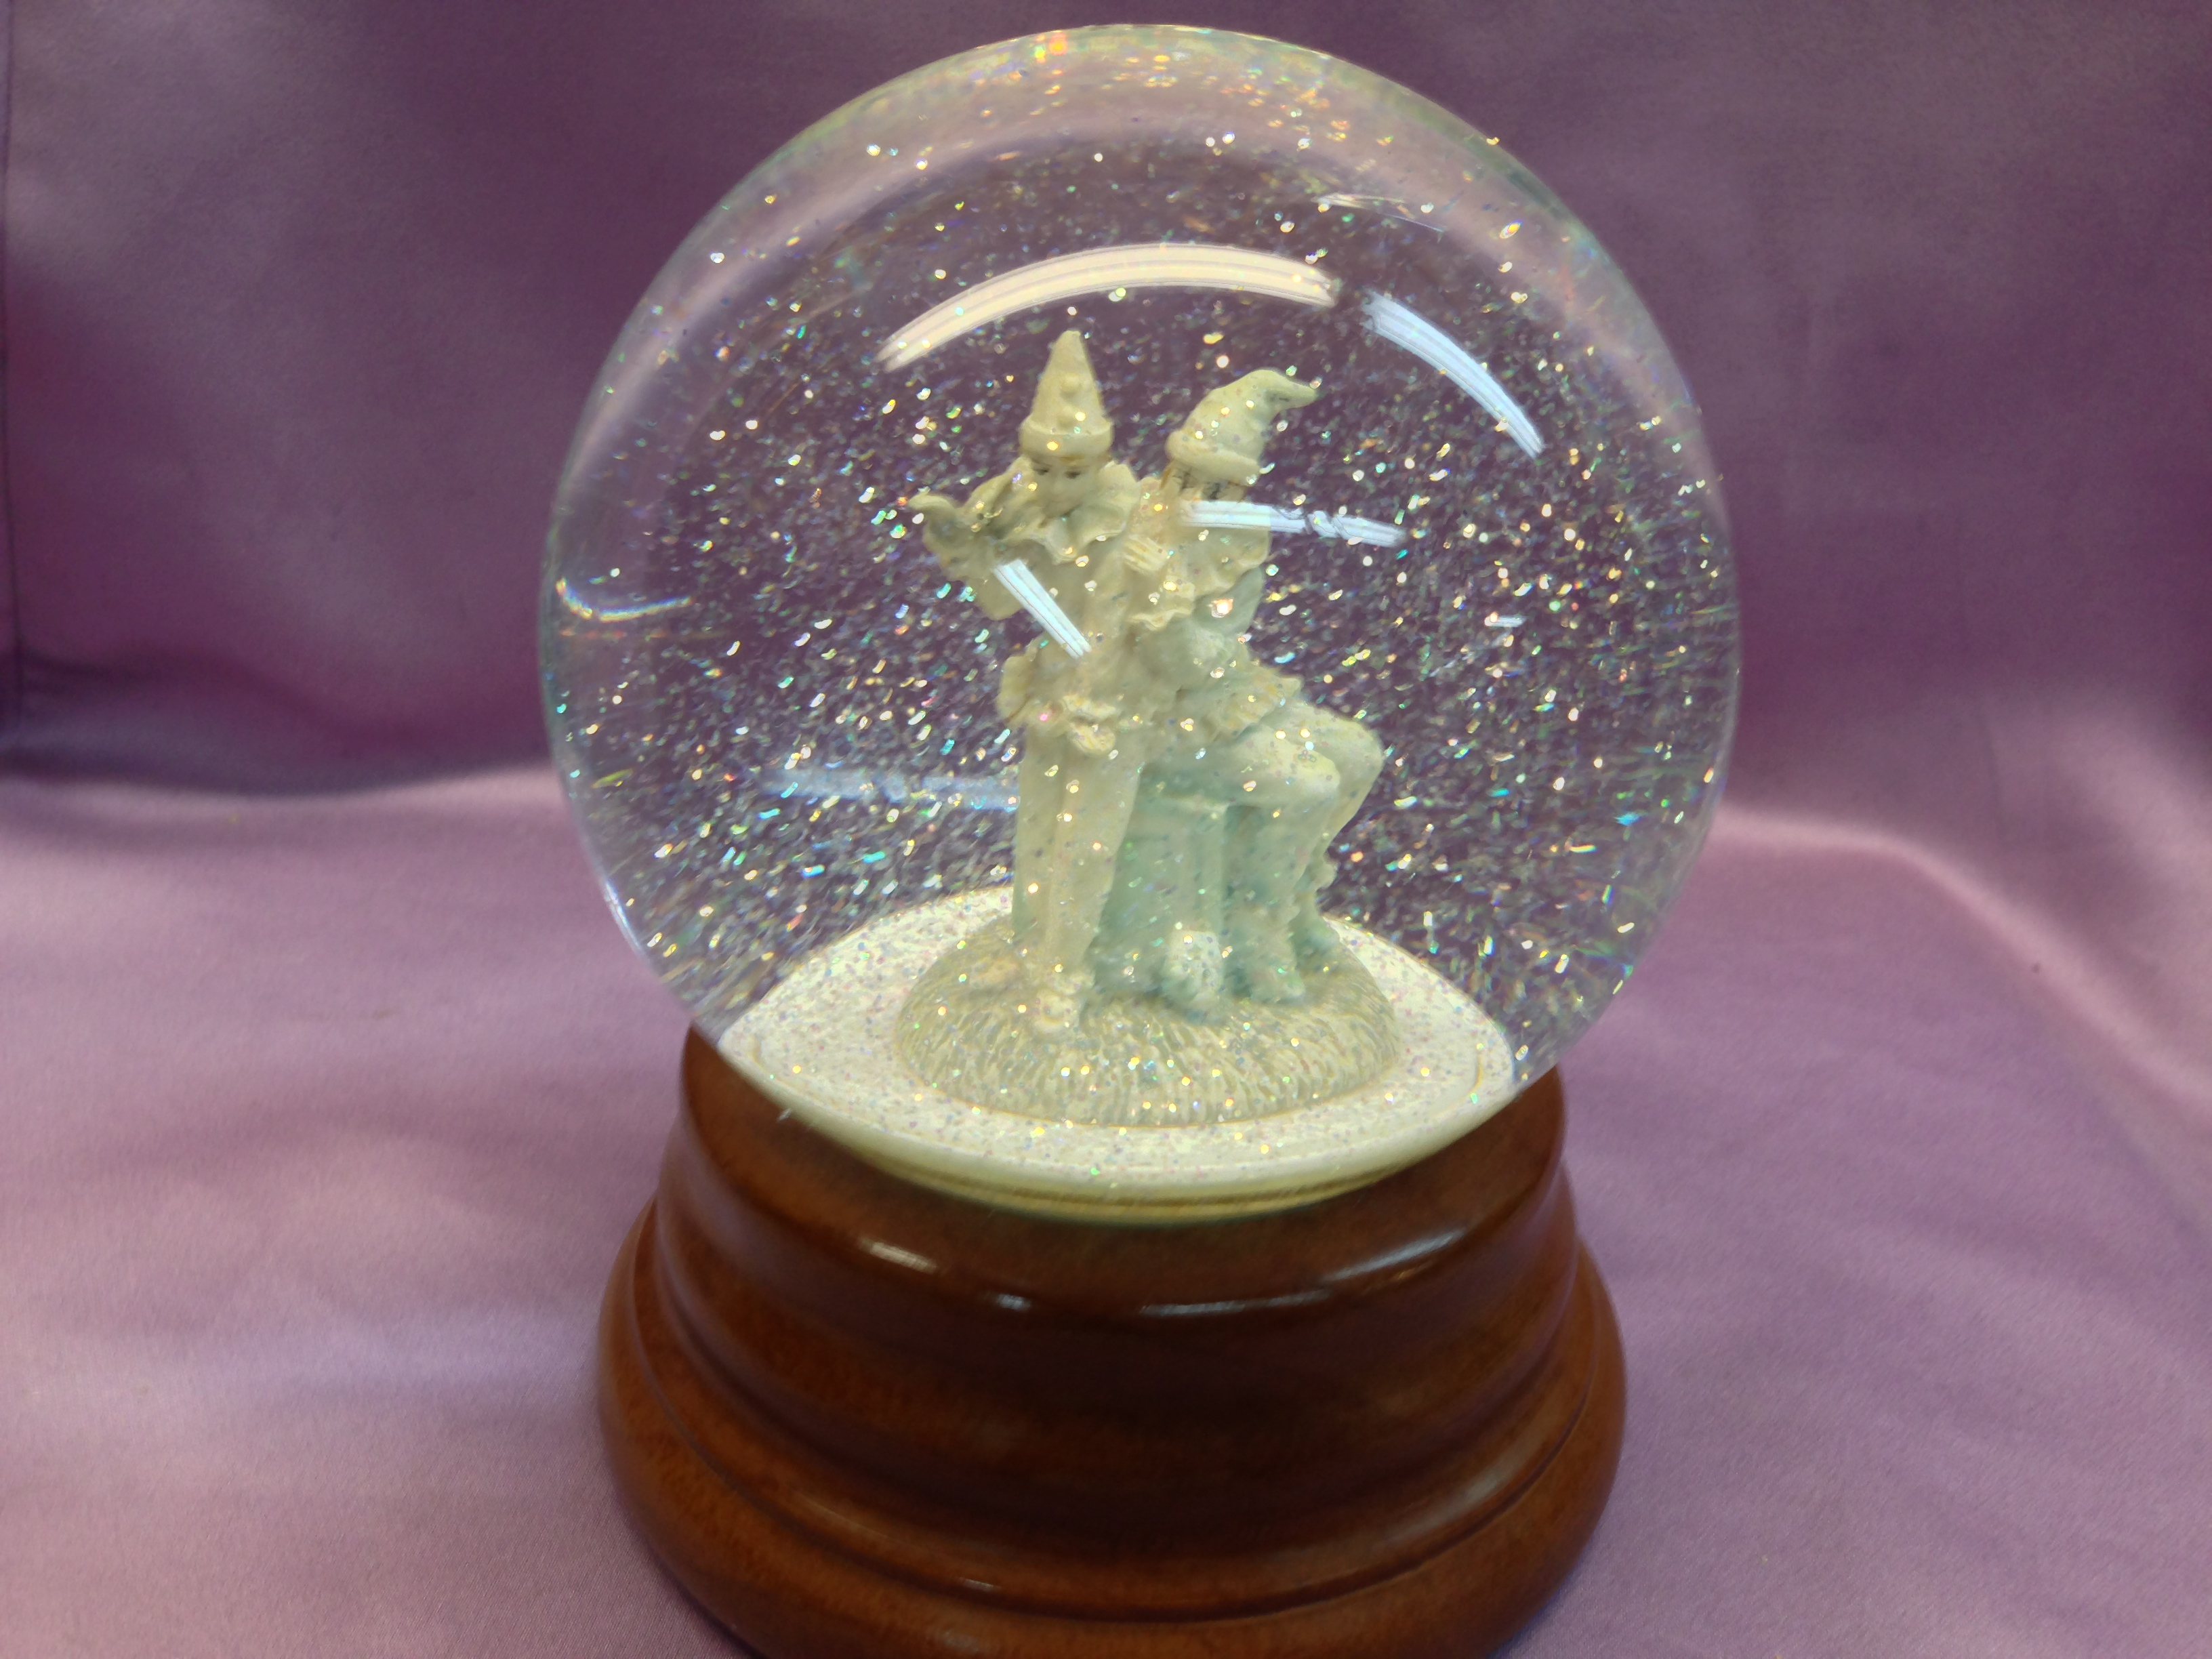 Two Clowns Snow Globe